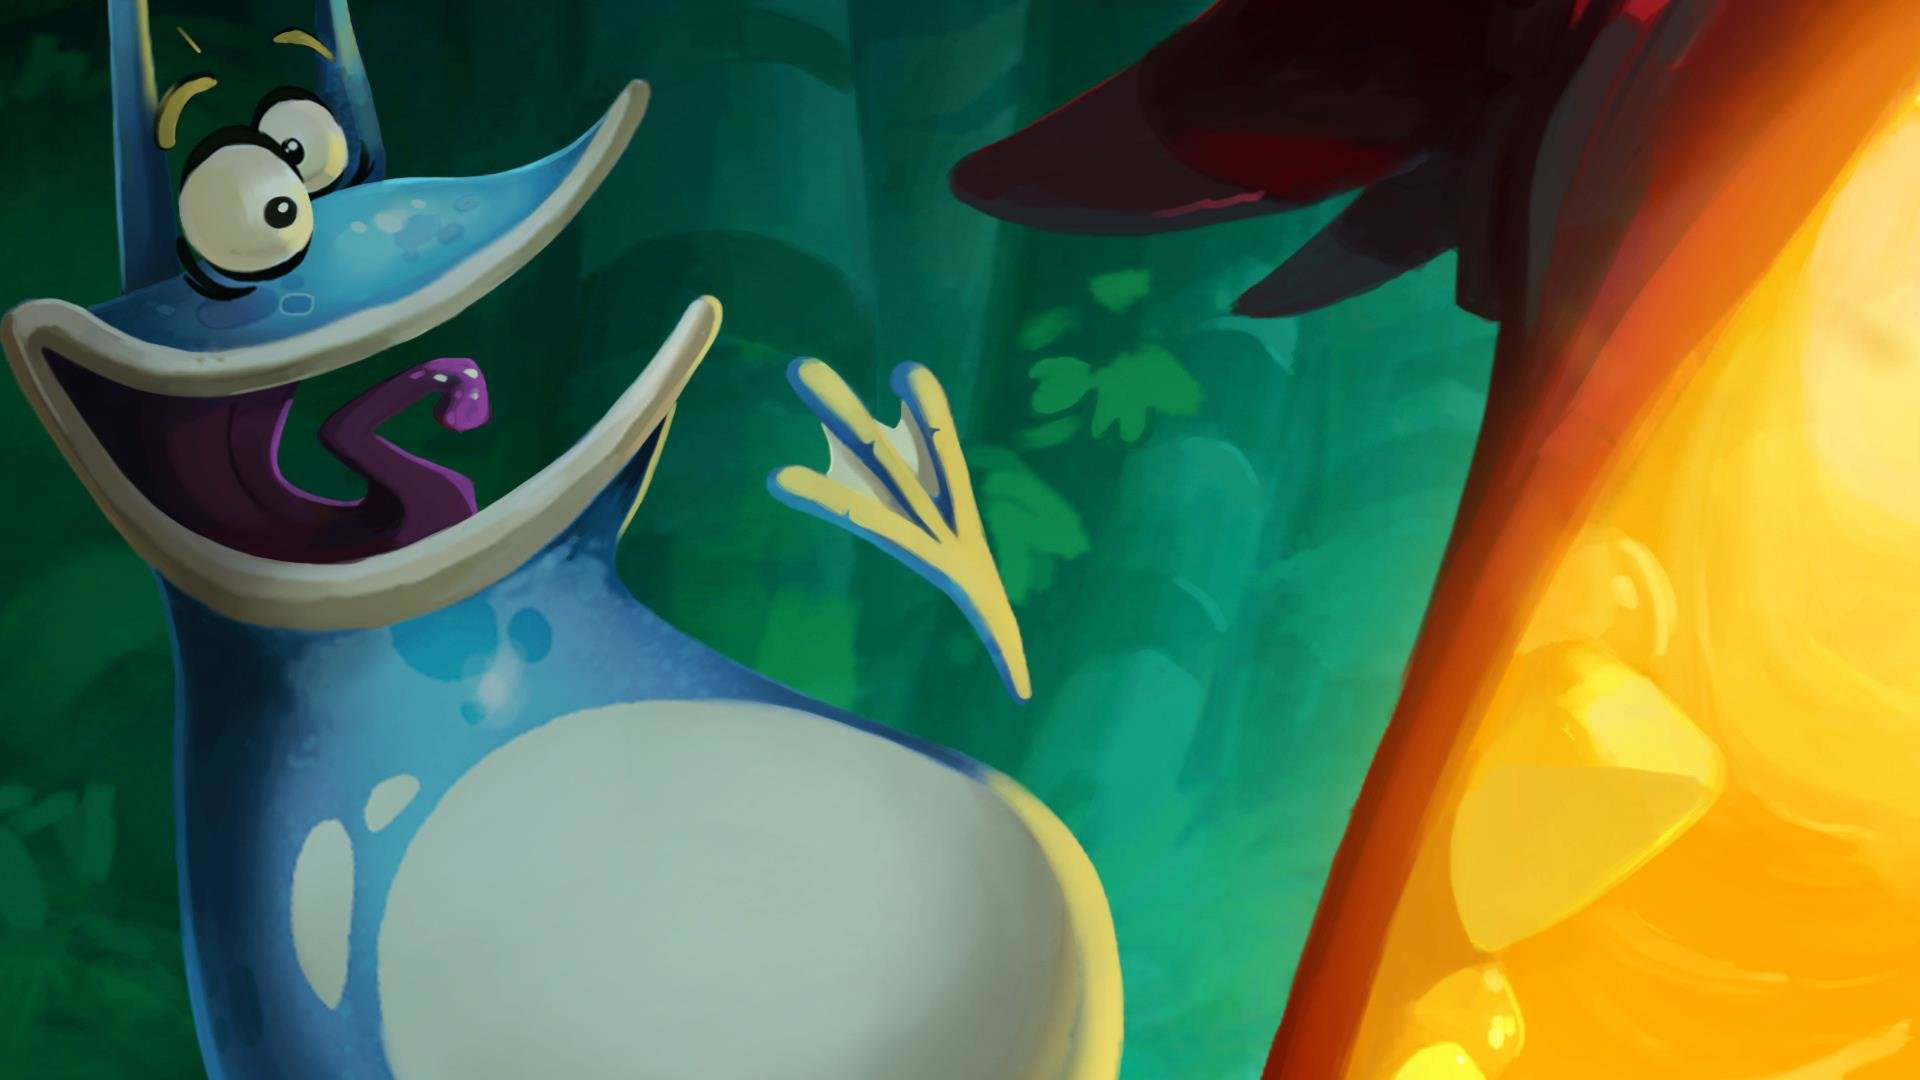 Free download Rayman Legends background ID:26530 hd 1920x1080 for desktop